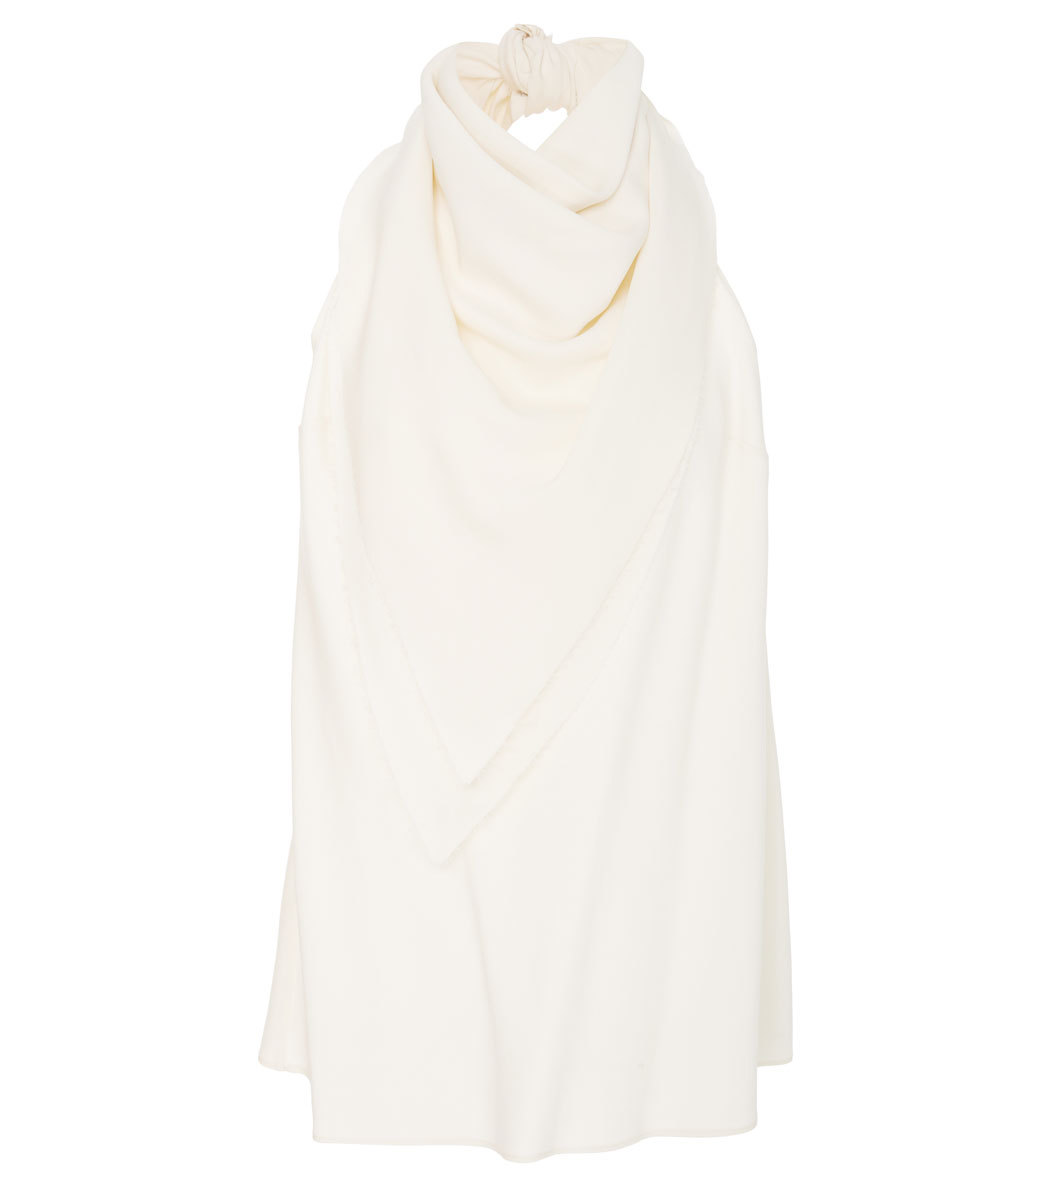 MARISA WITKIN Backless Bandana Top in Ivory